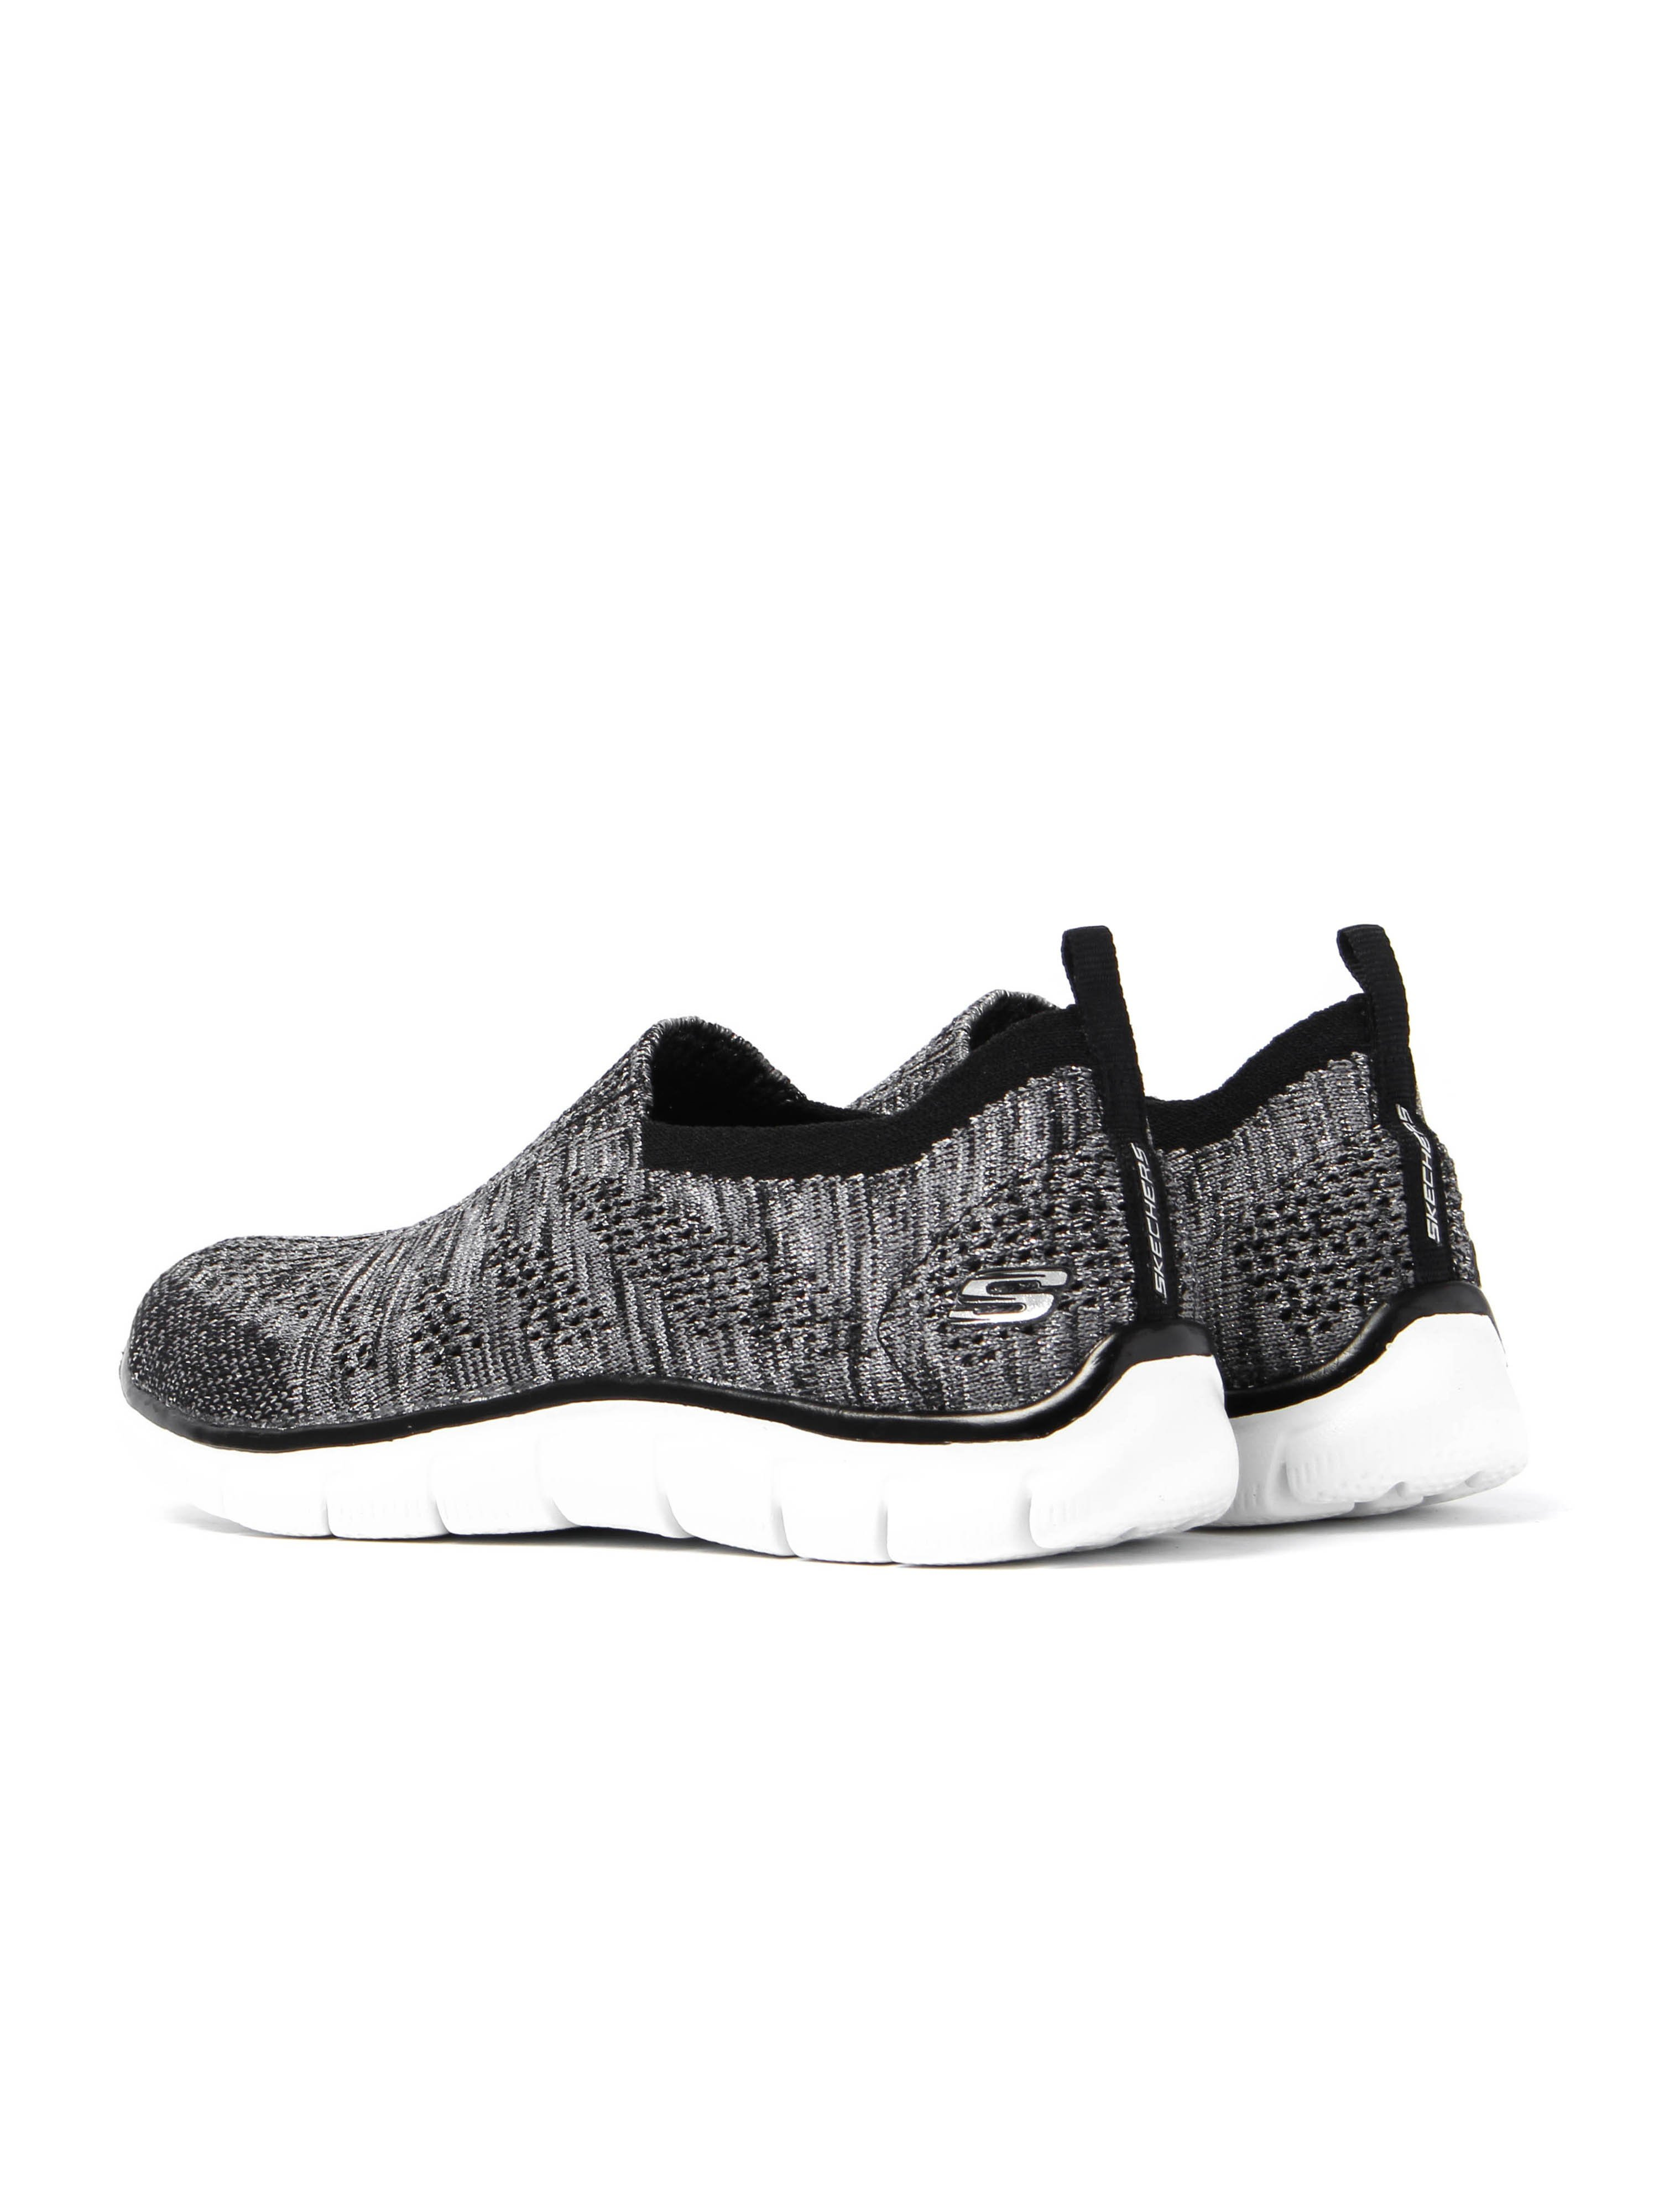 Skechers Women's Empire Round Up Trainers - Black & Silver